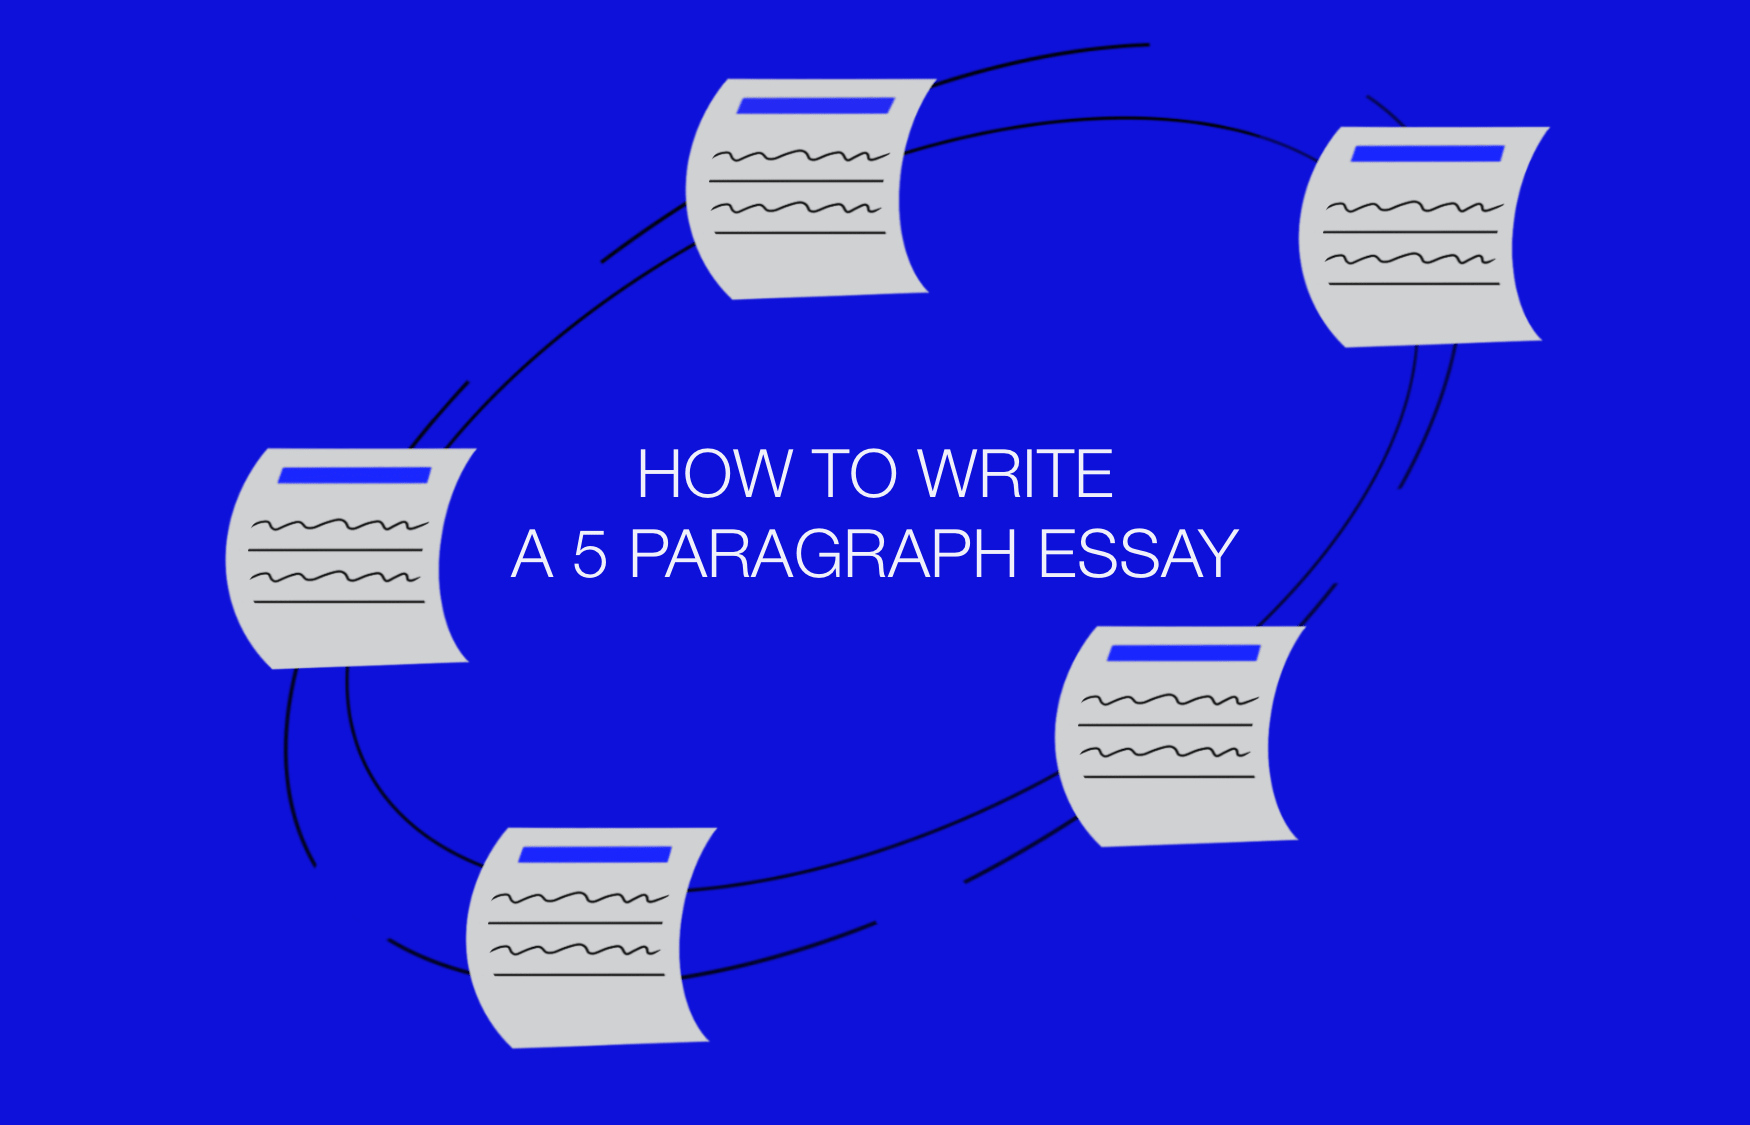 5 Paragraph Essay: Guide, Topics, Outline, Examples | EssayPro